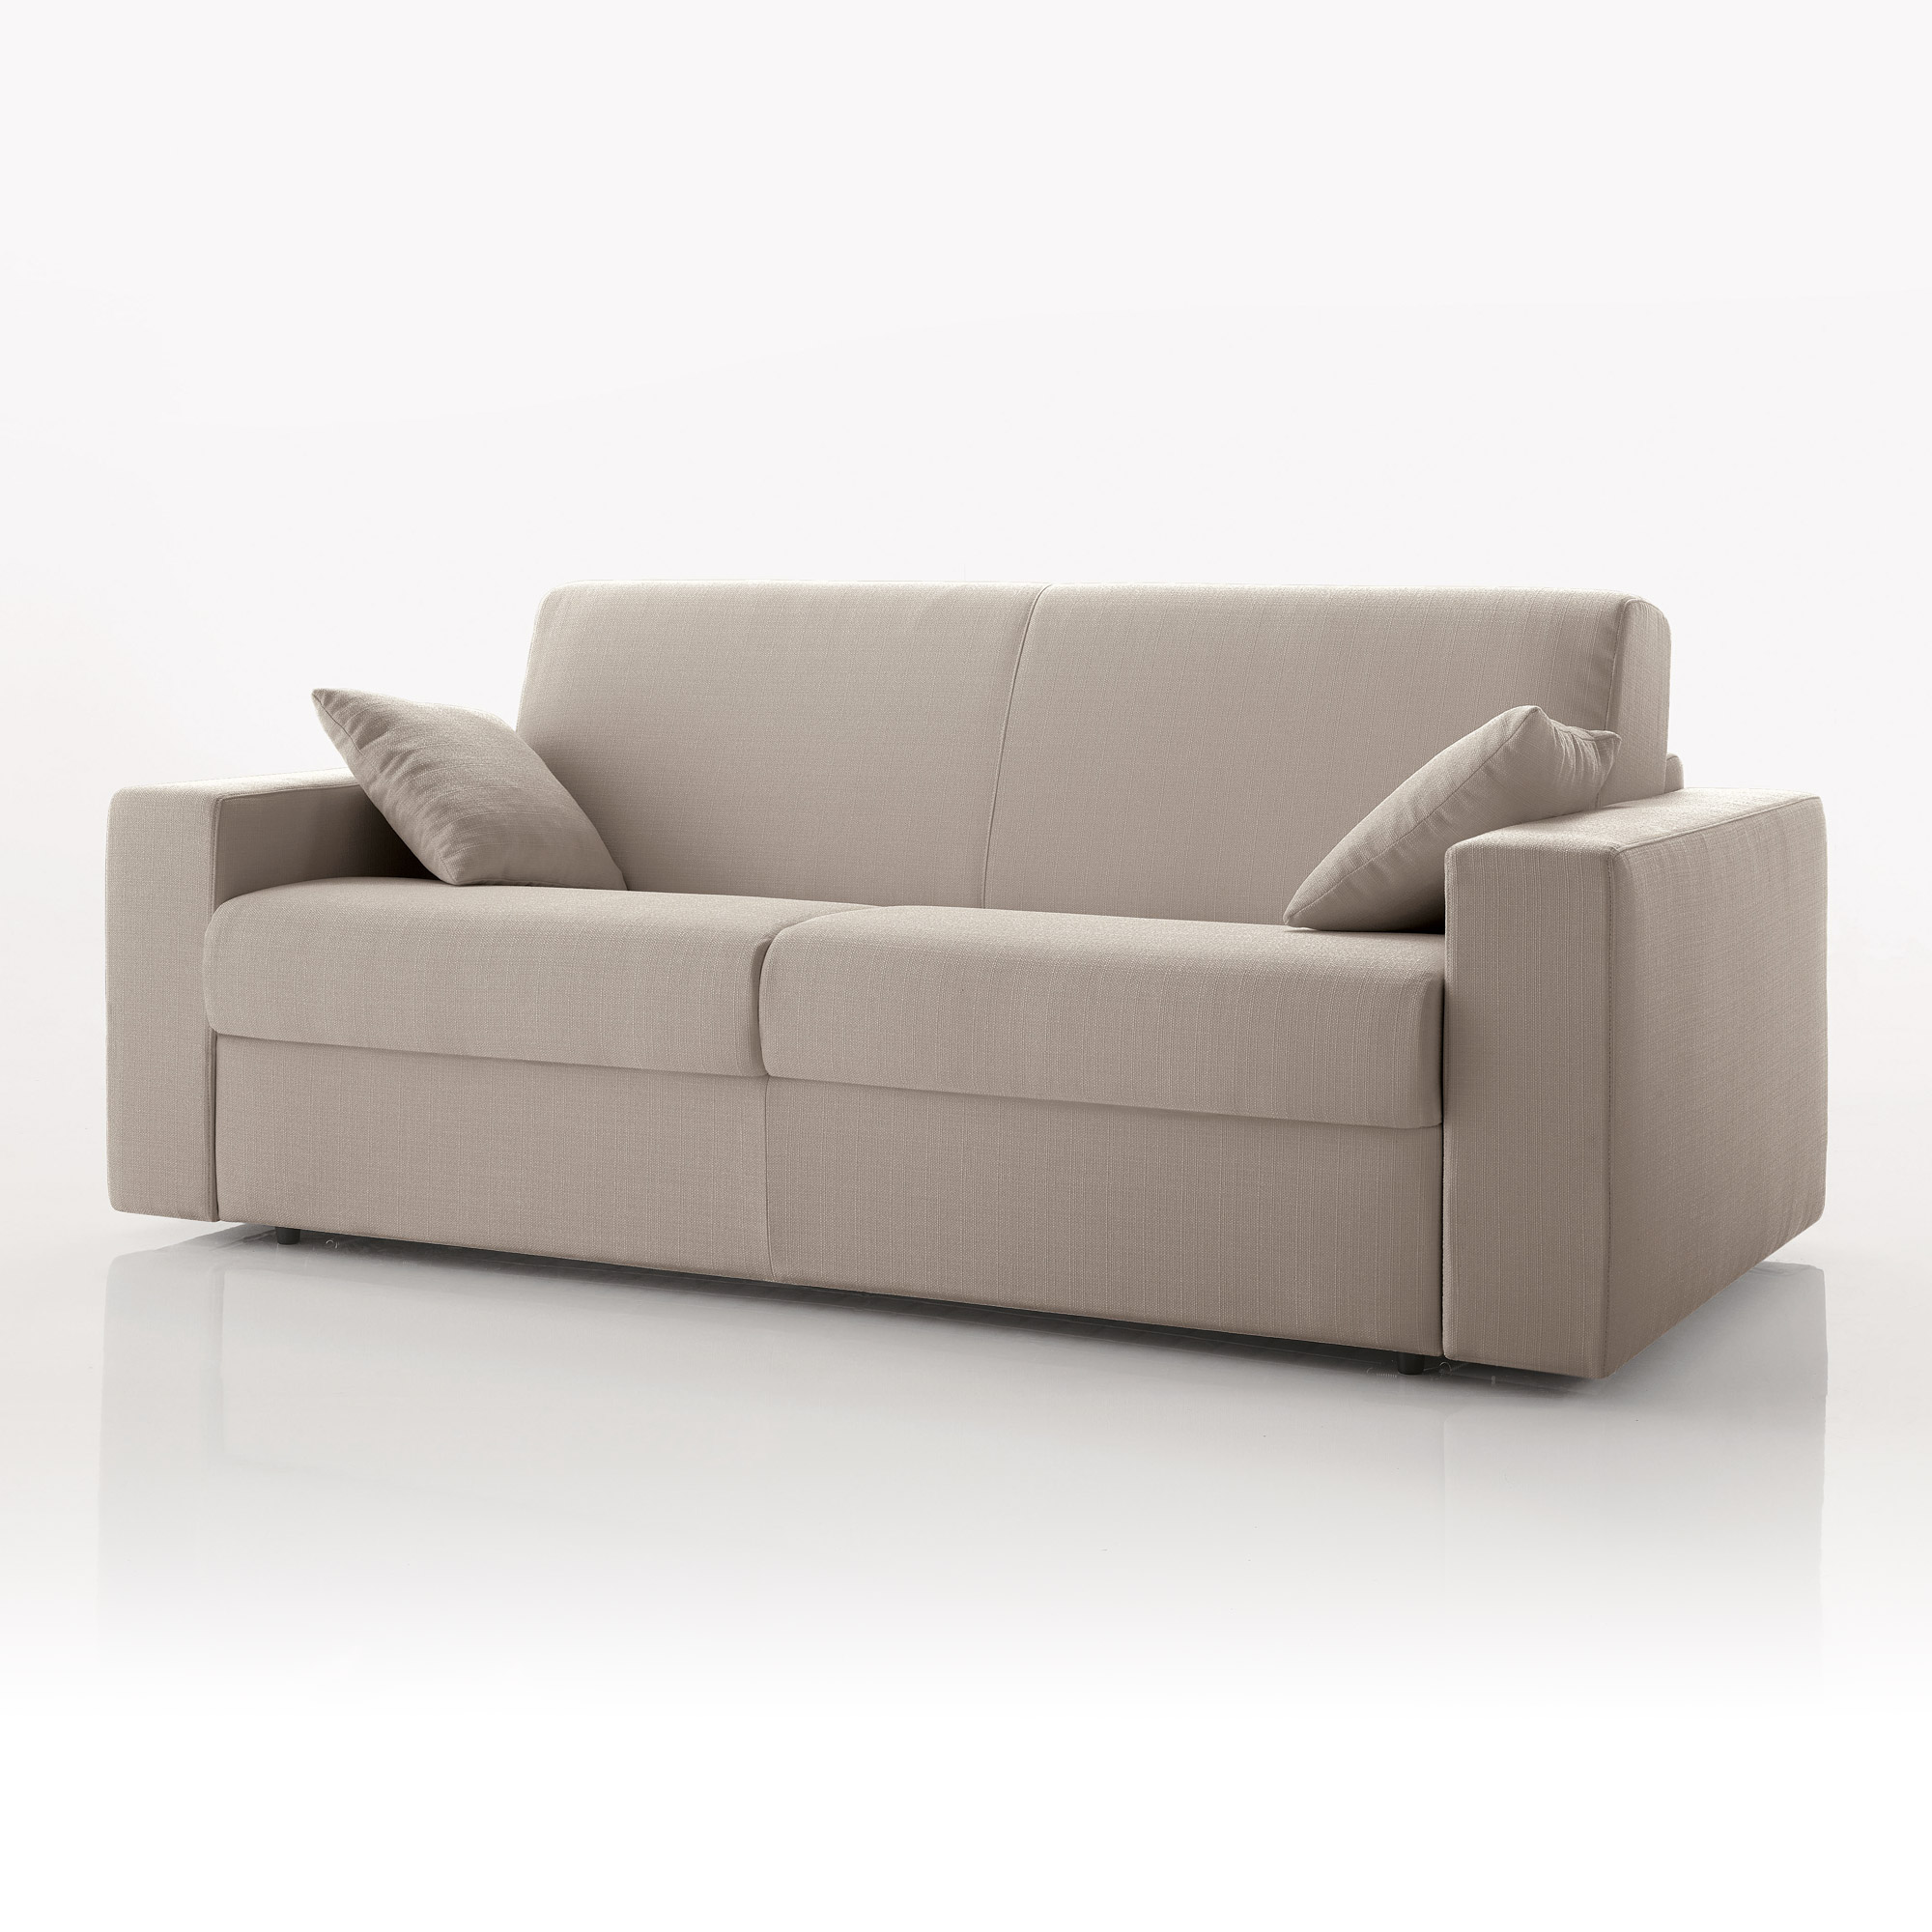 Canap convertible 3 places tissu d houssable cru ebay - Canape convertible definition ...